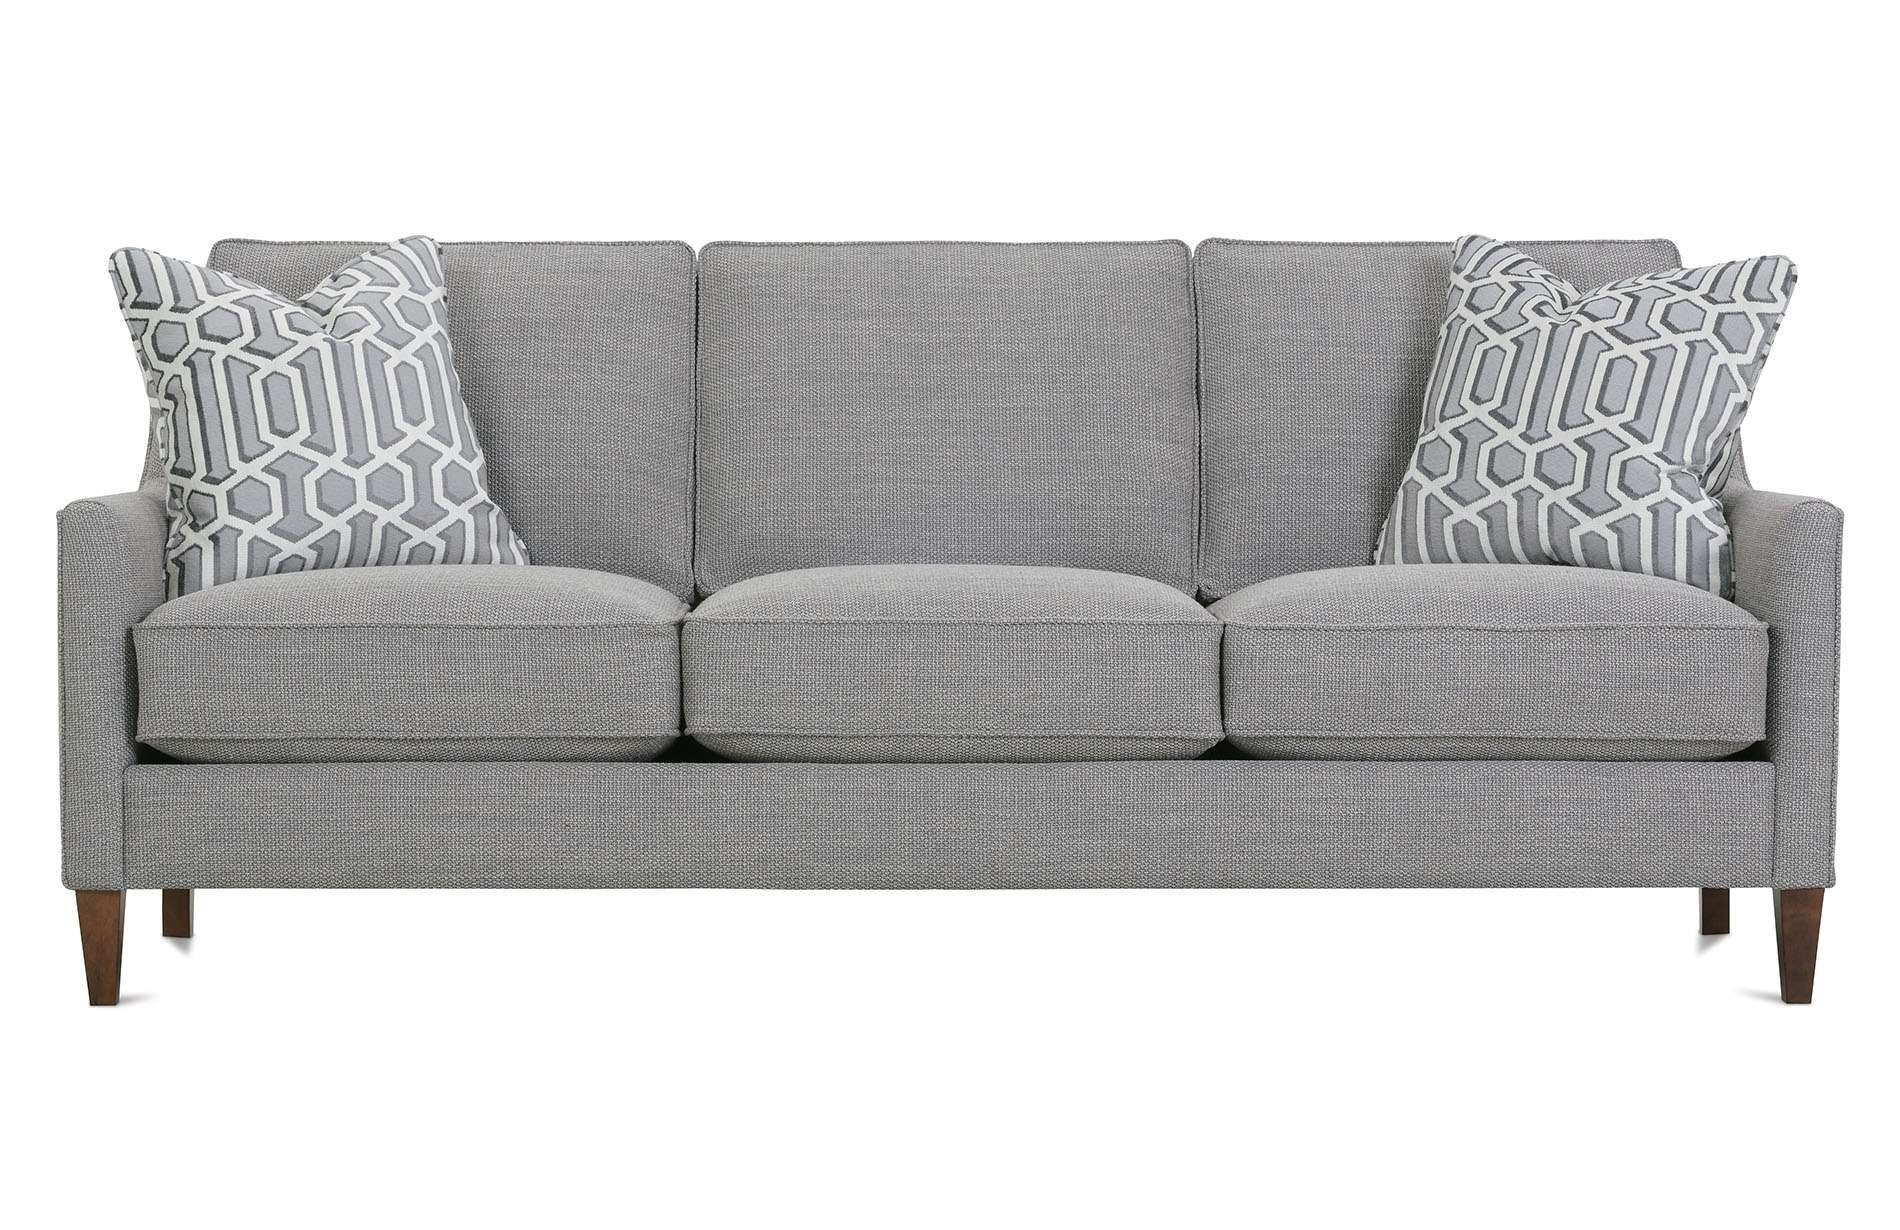 Dalton Sofa Bed Cheap White Chairs Andee P390 002 Rowe Furniture Color Story Stormy